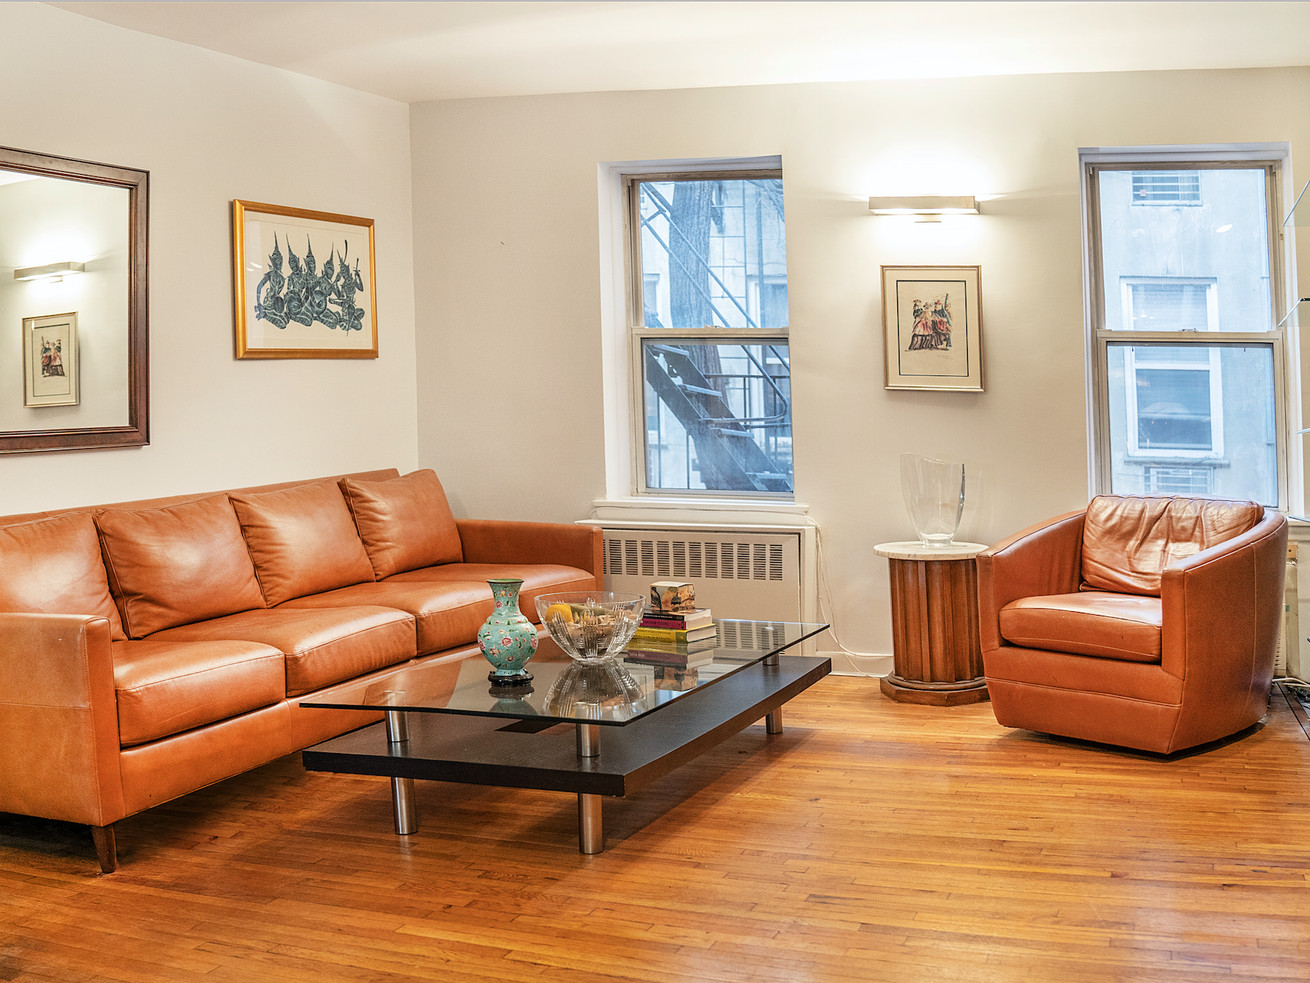 A living area with hardwood floors, two windows, a brown leather couch, and white exposed brick.